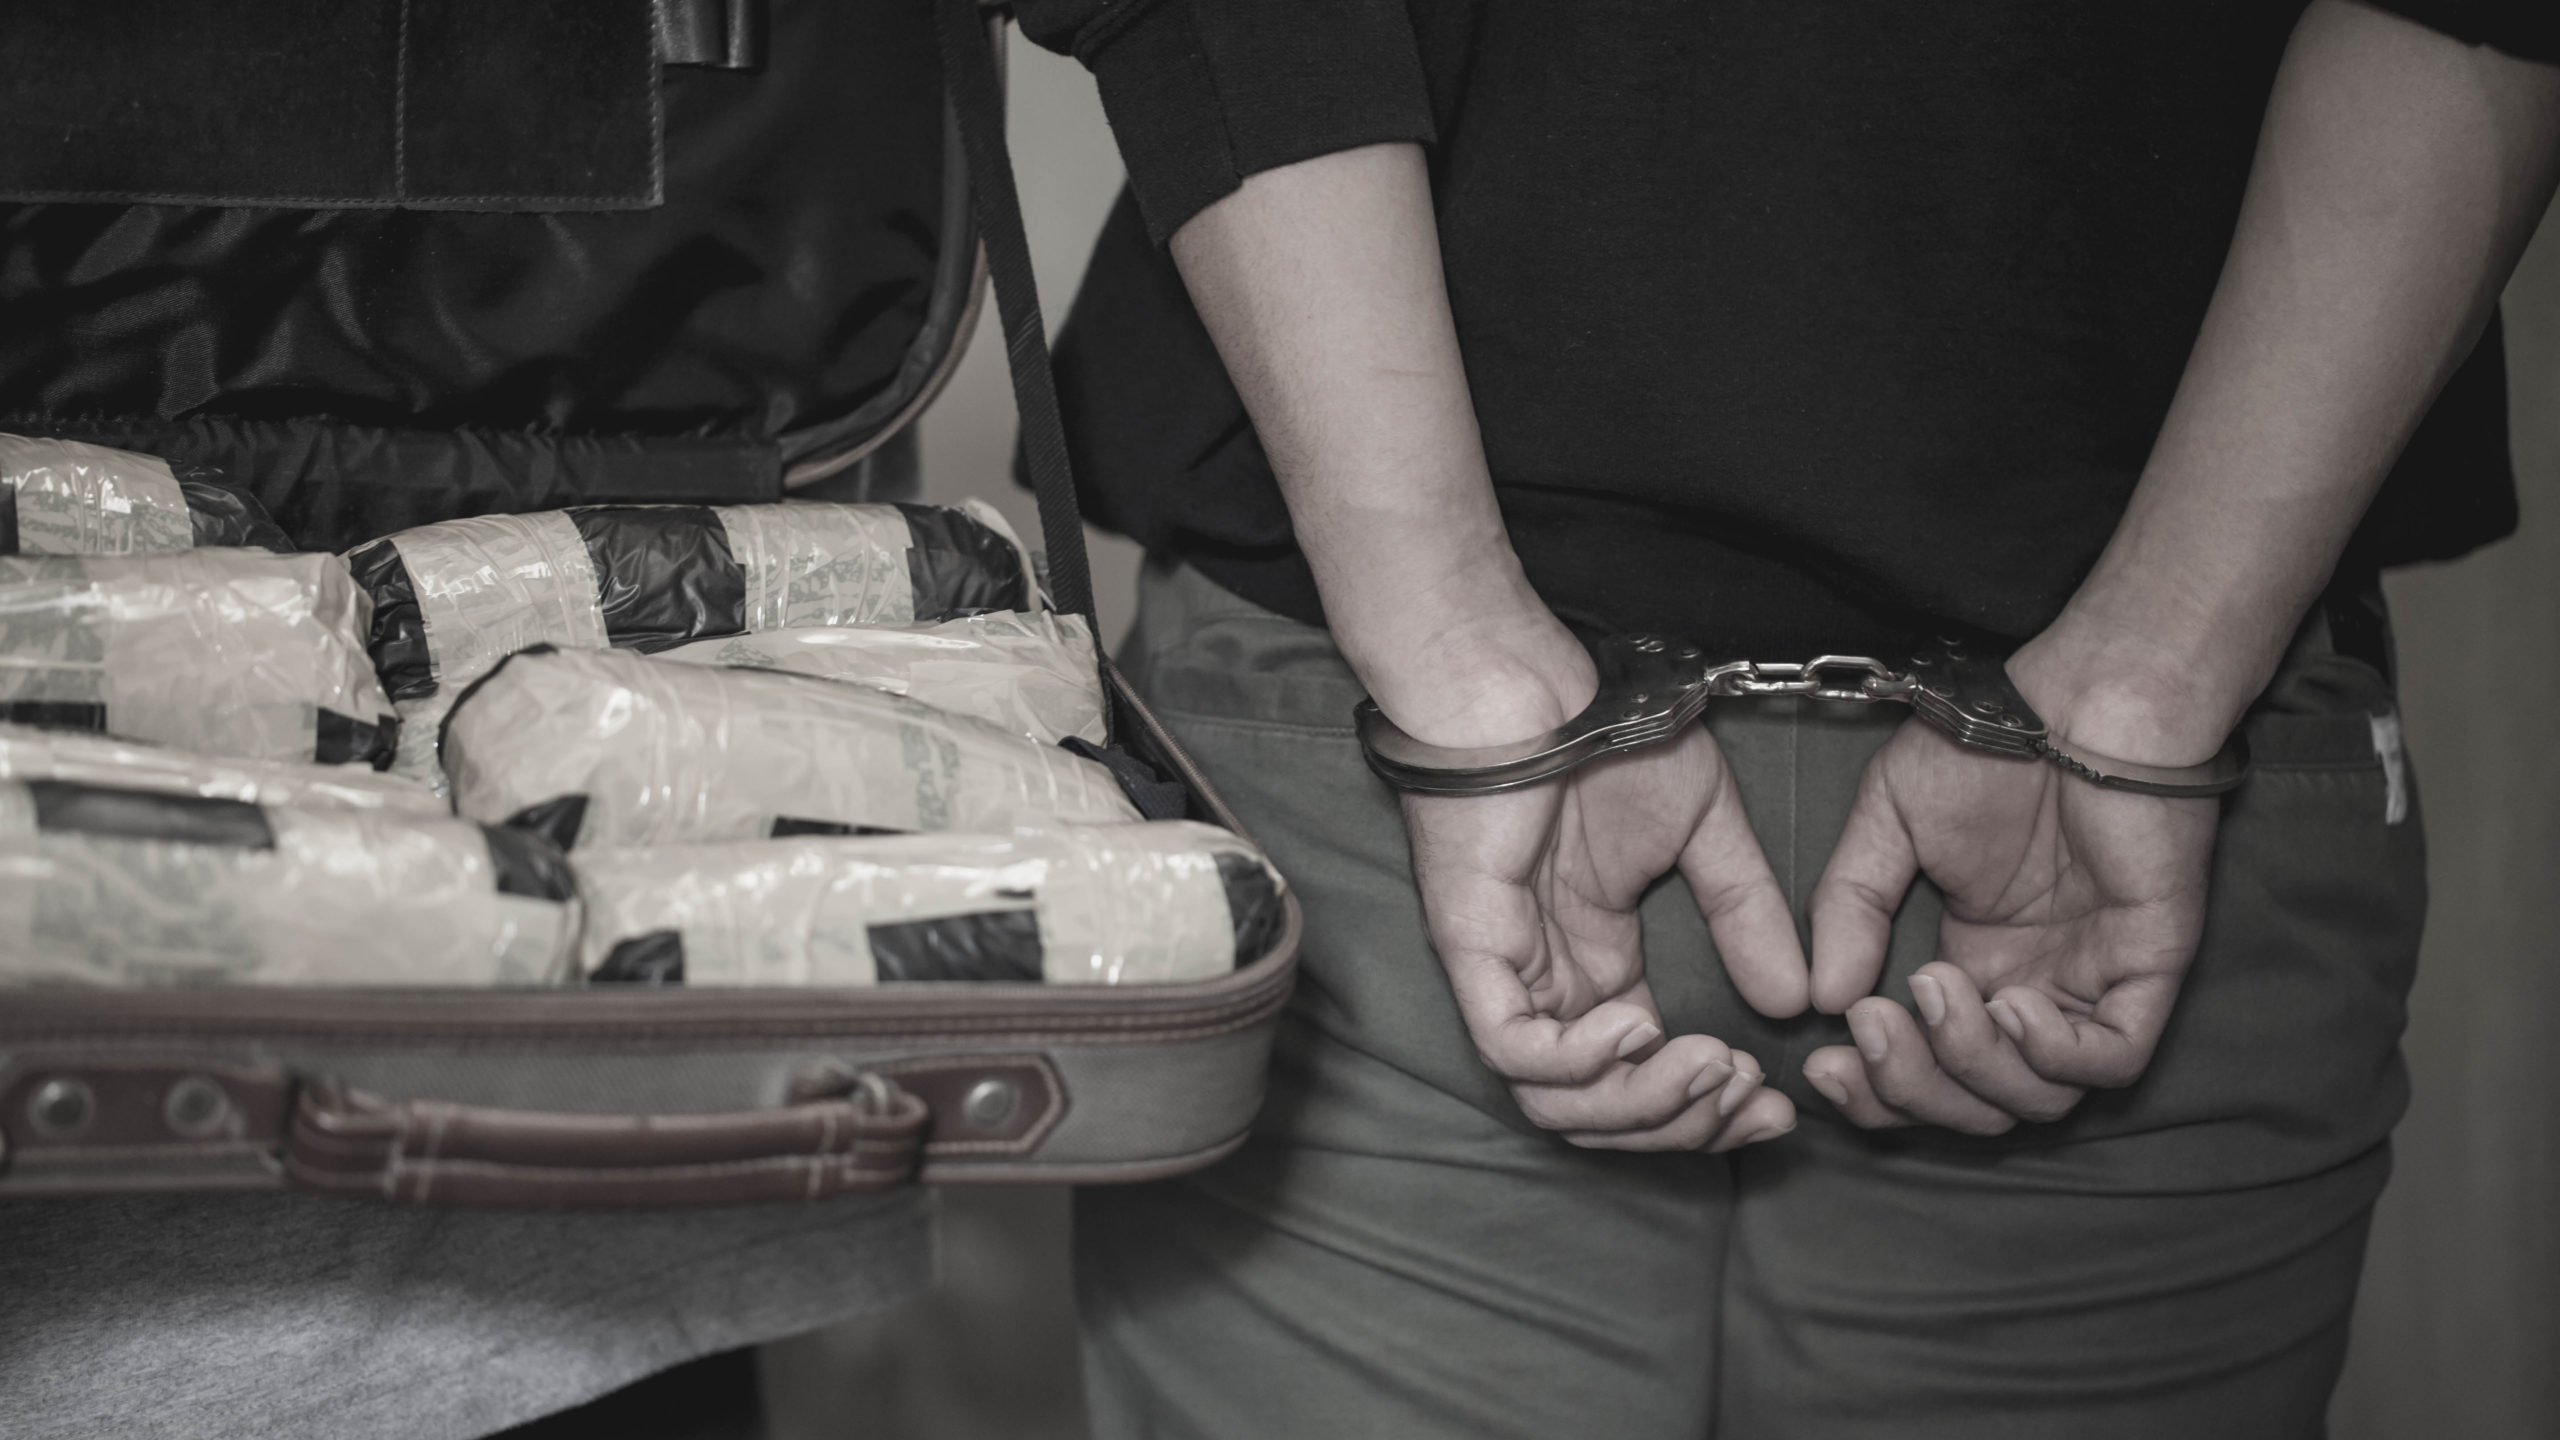 Police arrest drug trafficker with handcuffs. [Shutterstock]